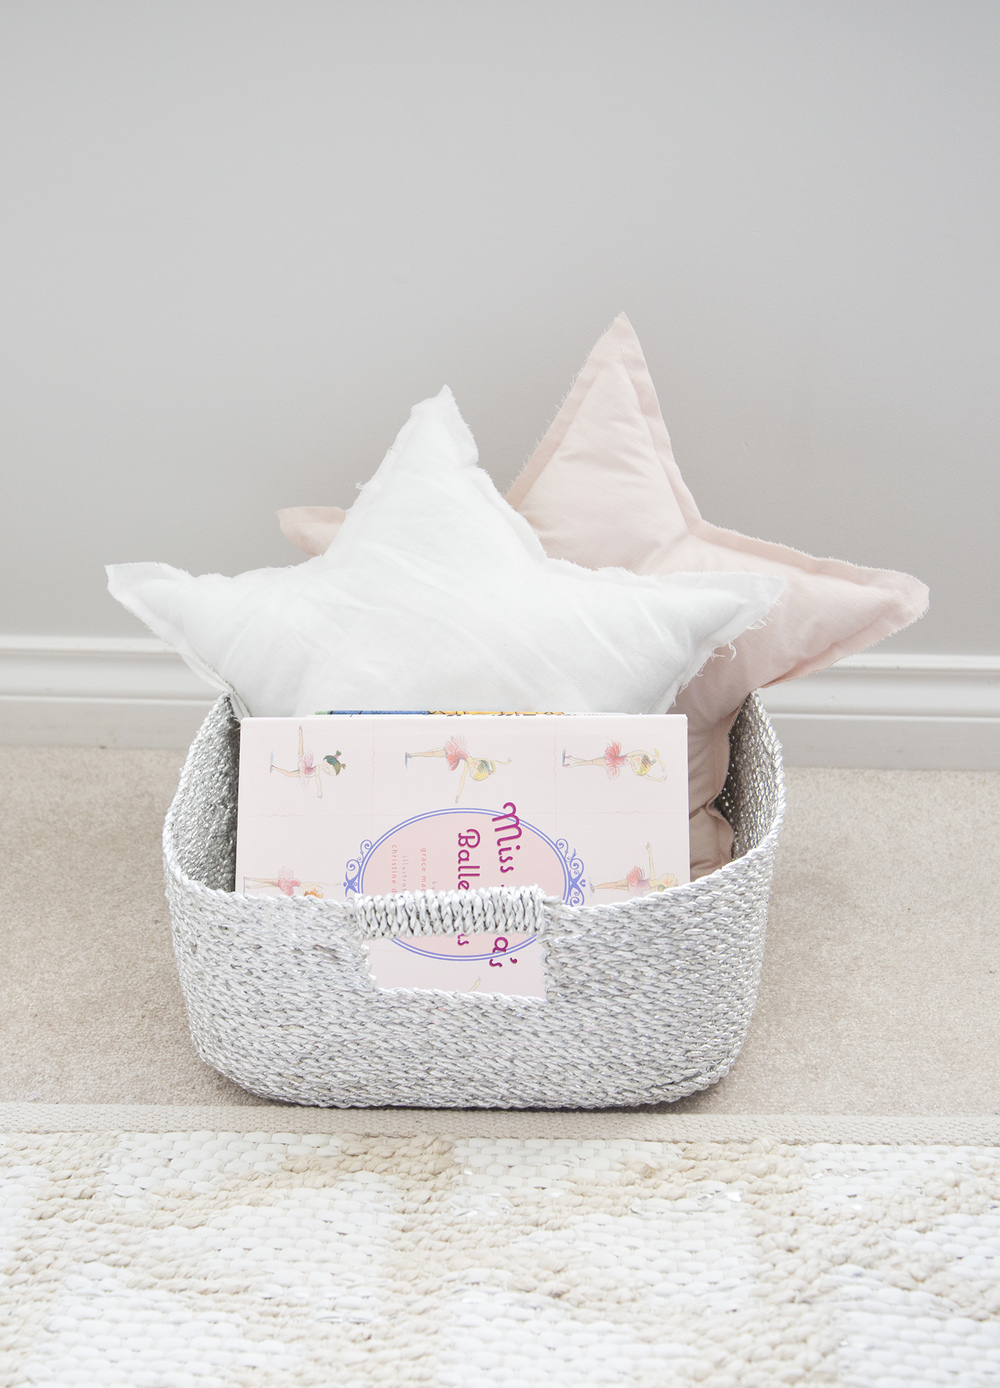 star pillows and books in silver basket